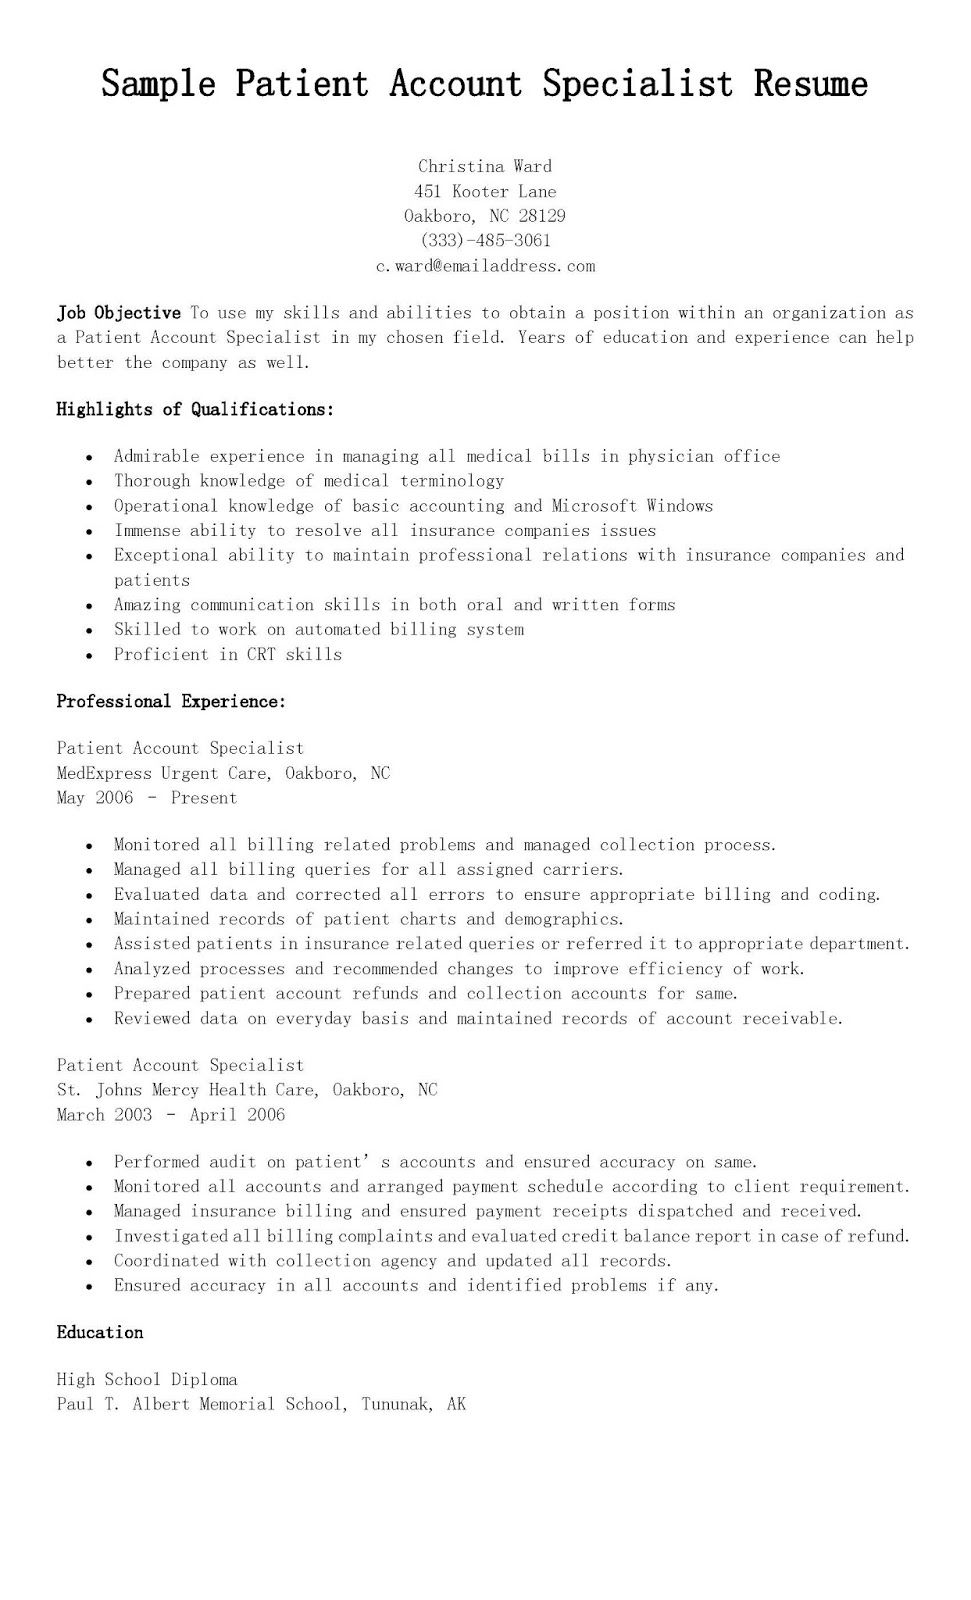 Sample Patient Account Specialist Resume Accounts Receivable Resume Accounting